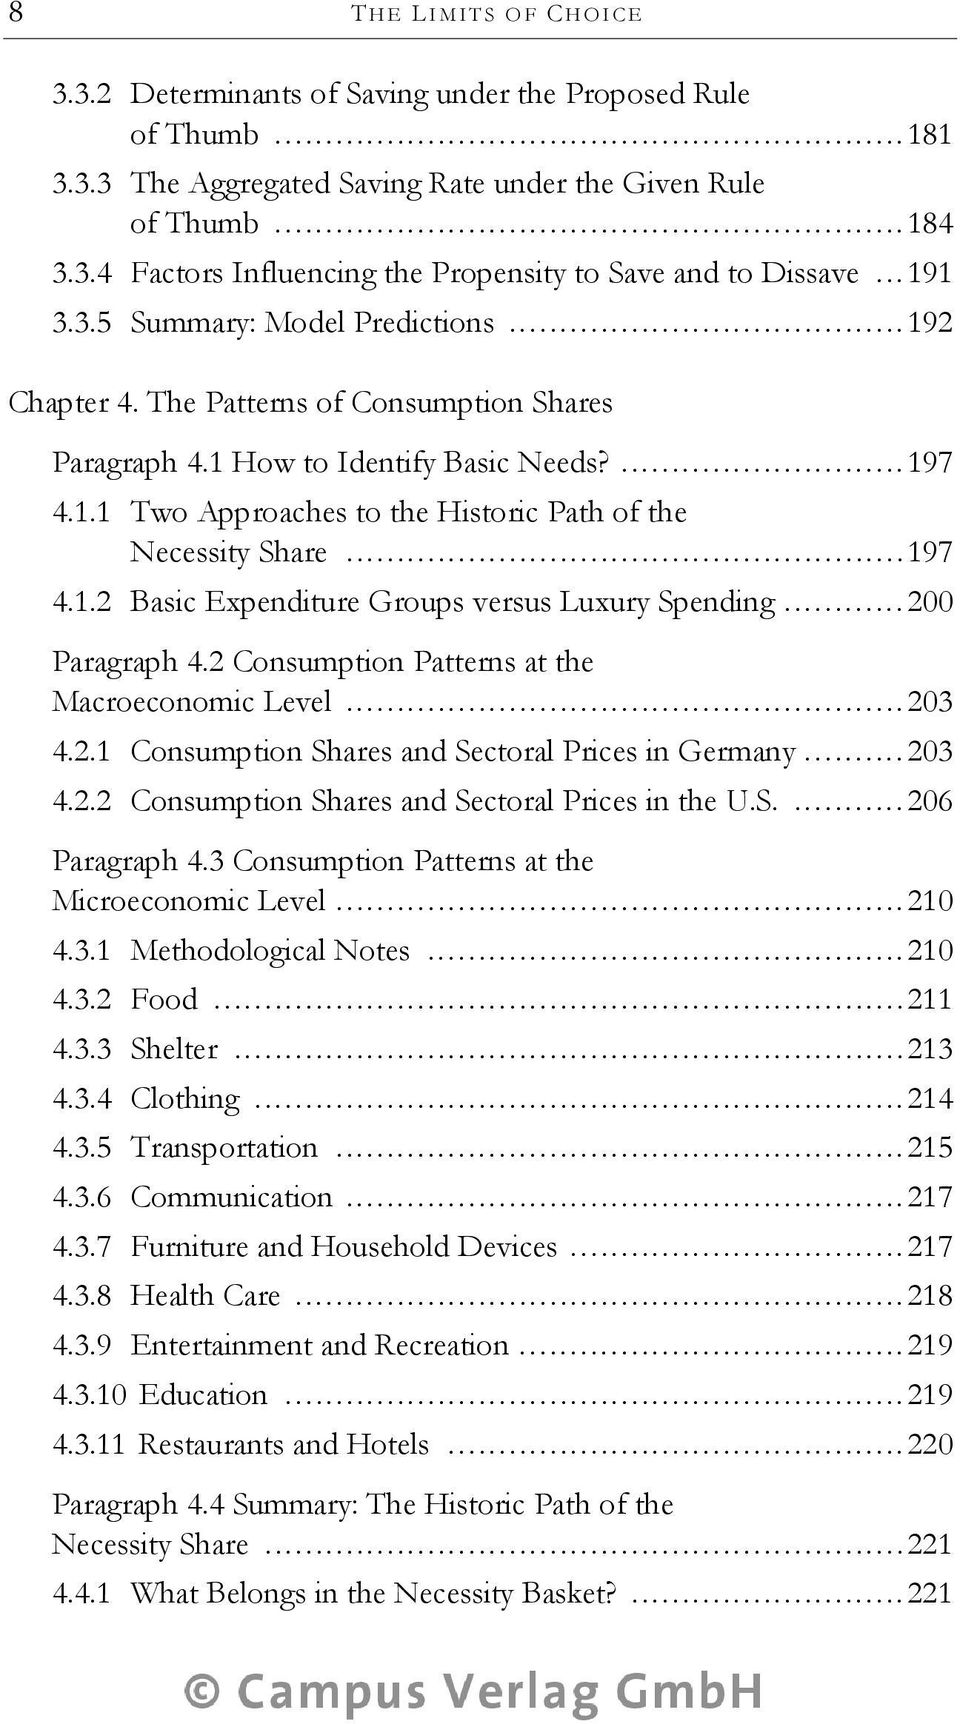 .. 197 4.1.2 Basic Expenditure Groups versus Luxury Spending... 200 Paragraph 4.2 Consumption Patterns at the Macroeconomic Level... 203 4.2.1 Consumption Shares and Sectoral Prices in Germany... 203 4.2.2 Consumption Shares and Sectoral Prices in the U.